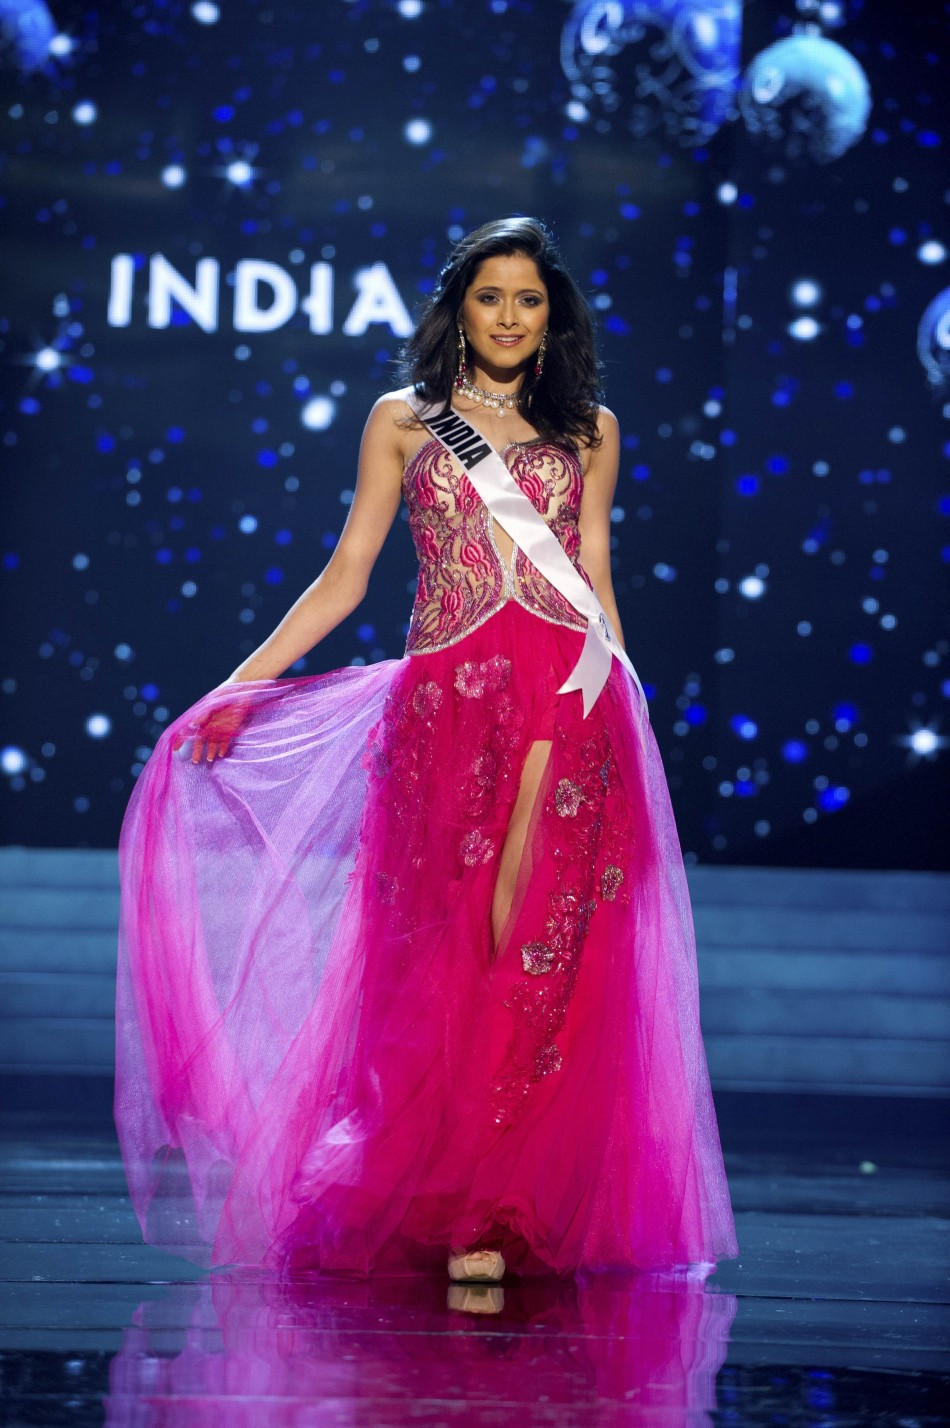 Miss India 2012 Singh competes in an evening gown of her choice during the Evening Gown Competition of the 2012 Miss Universe Presentation Show in Las Vega